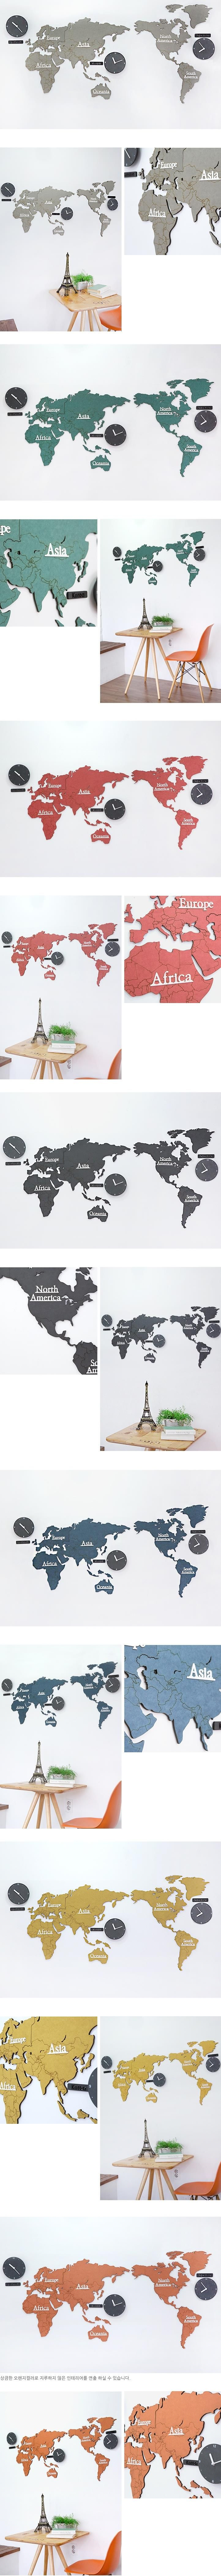 Best Ideas About Time Zone Map On Pinterest Show World Map - Show me a map of united states time zones